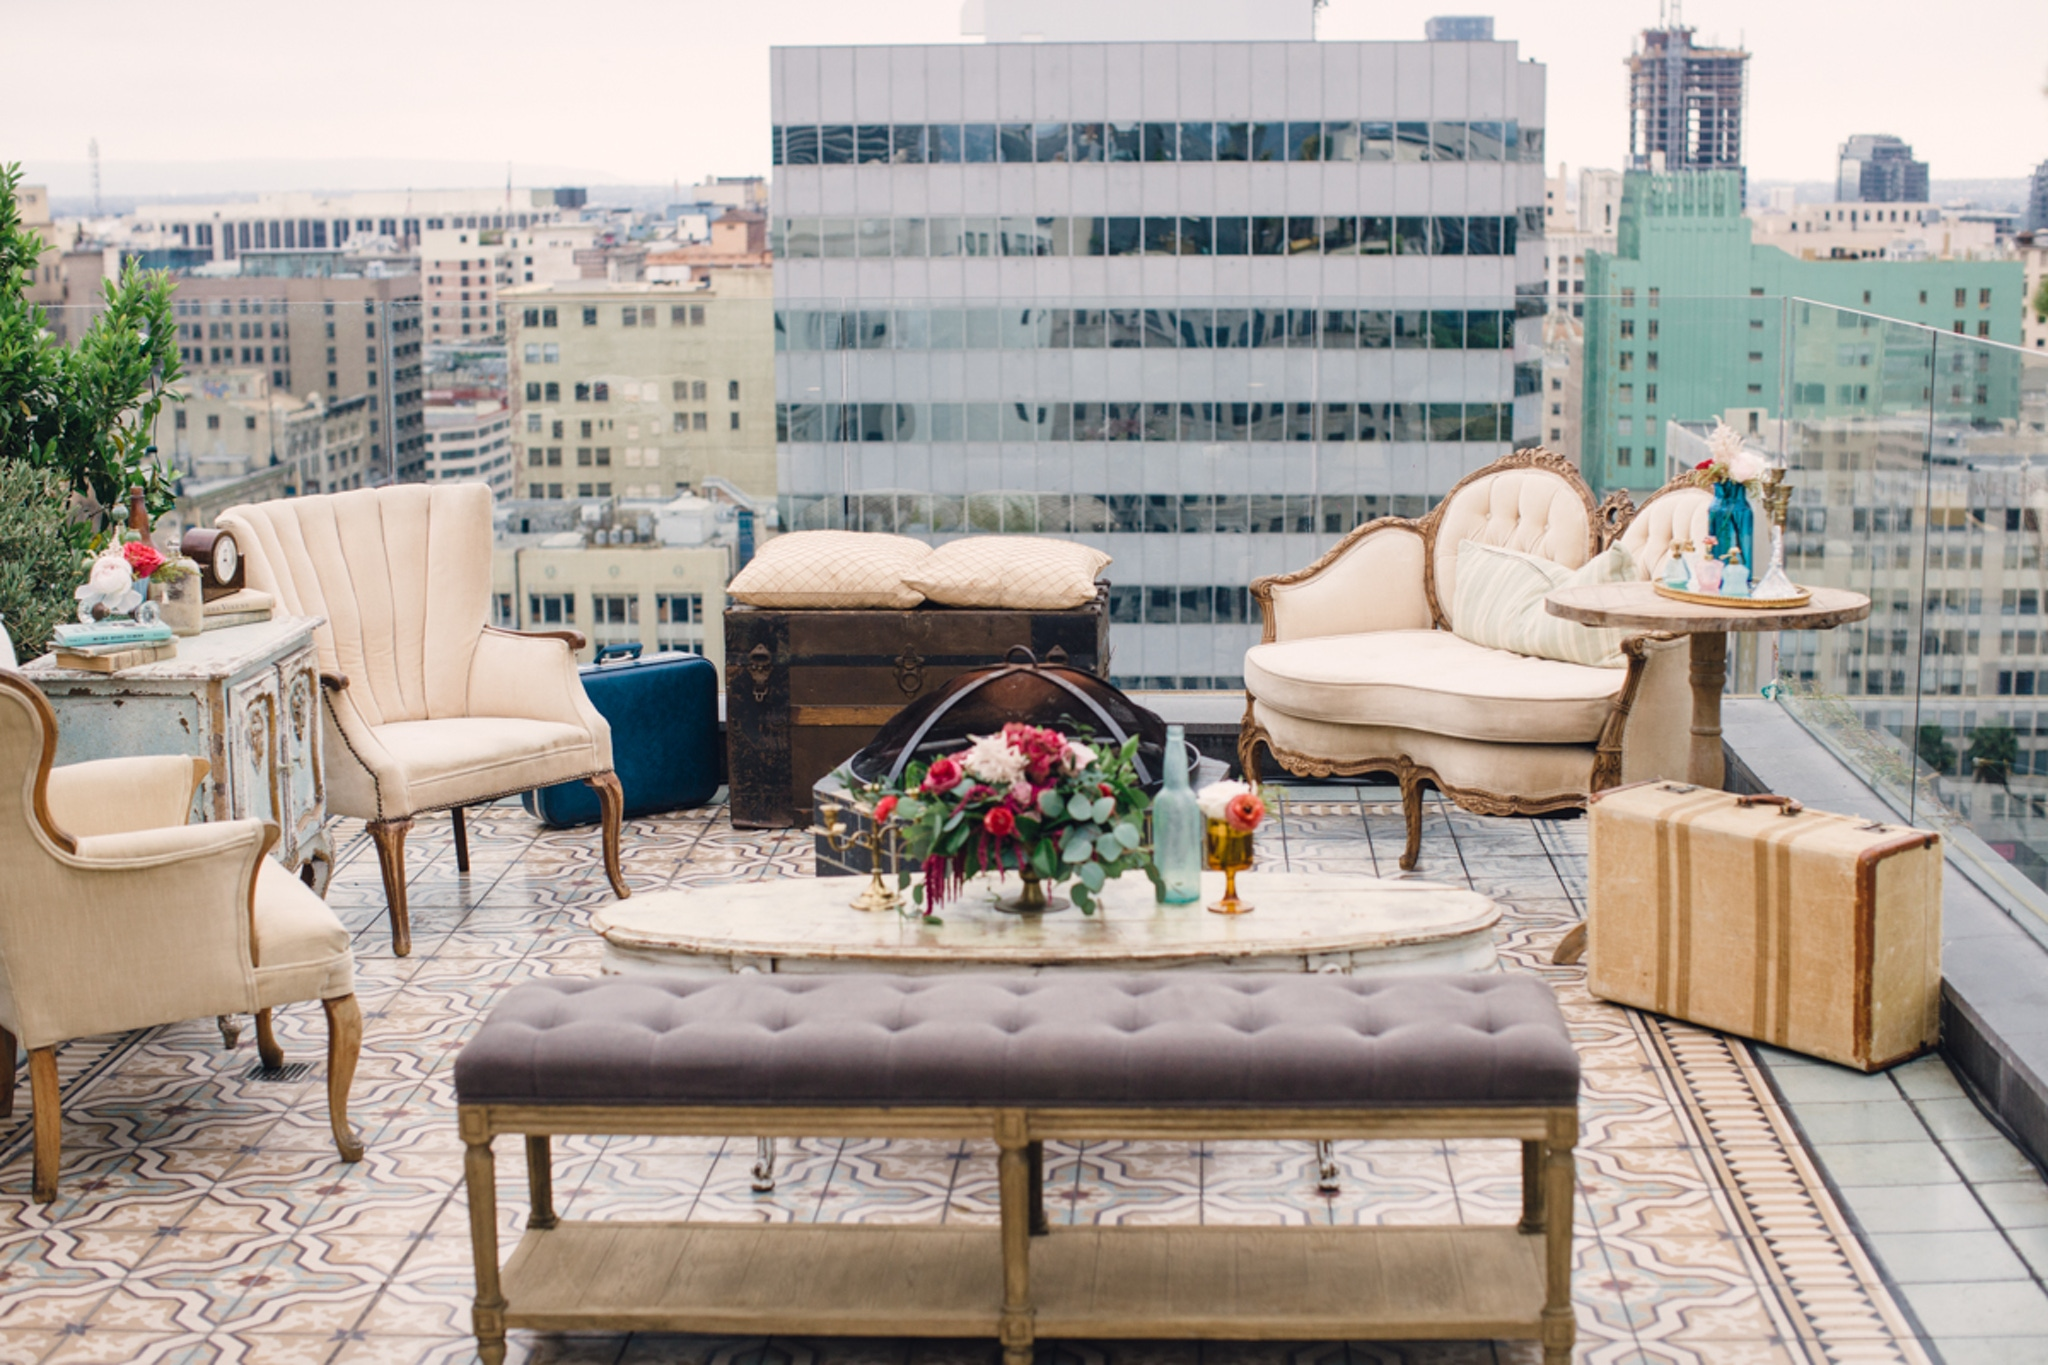 Lounge space on rooftop venue in Los Angeles, California